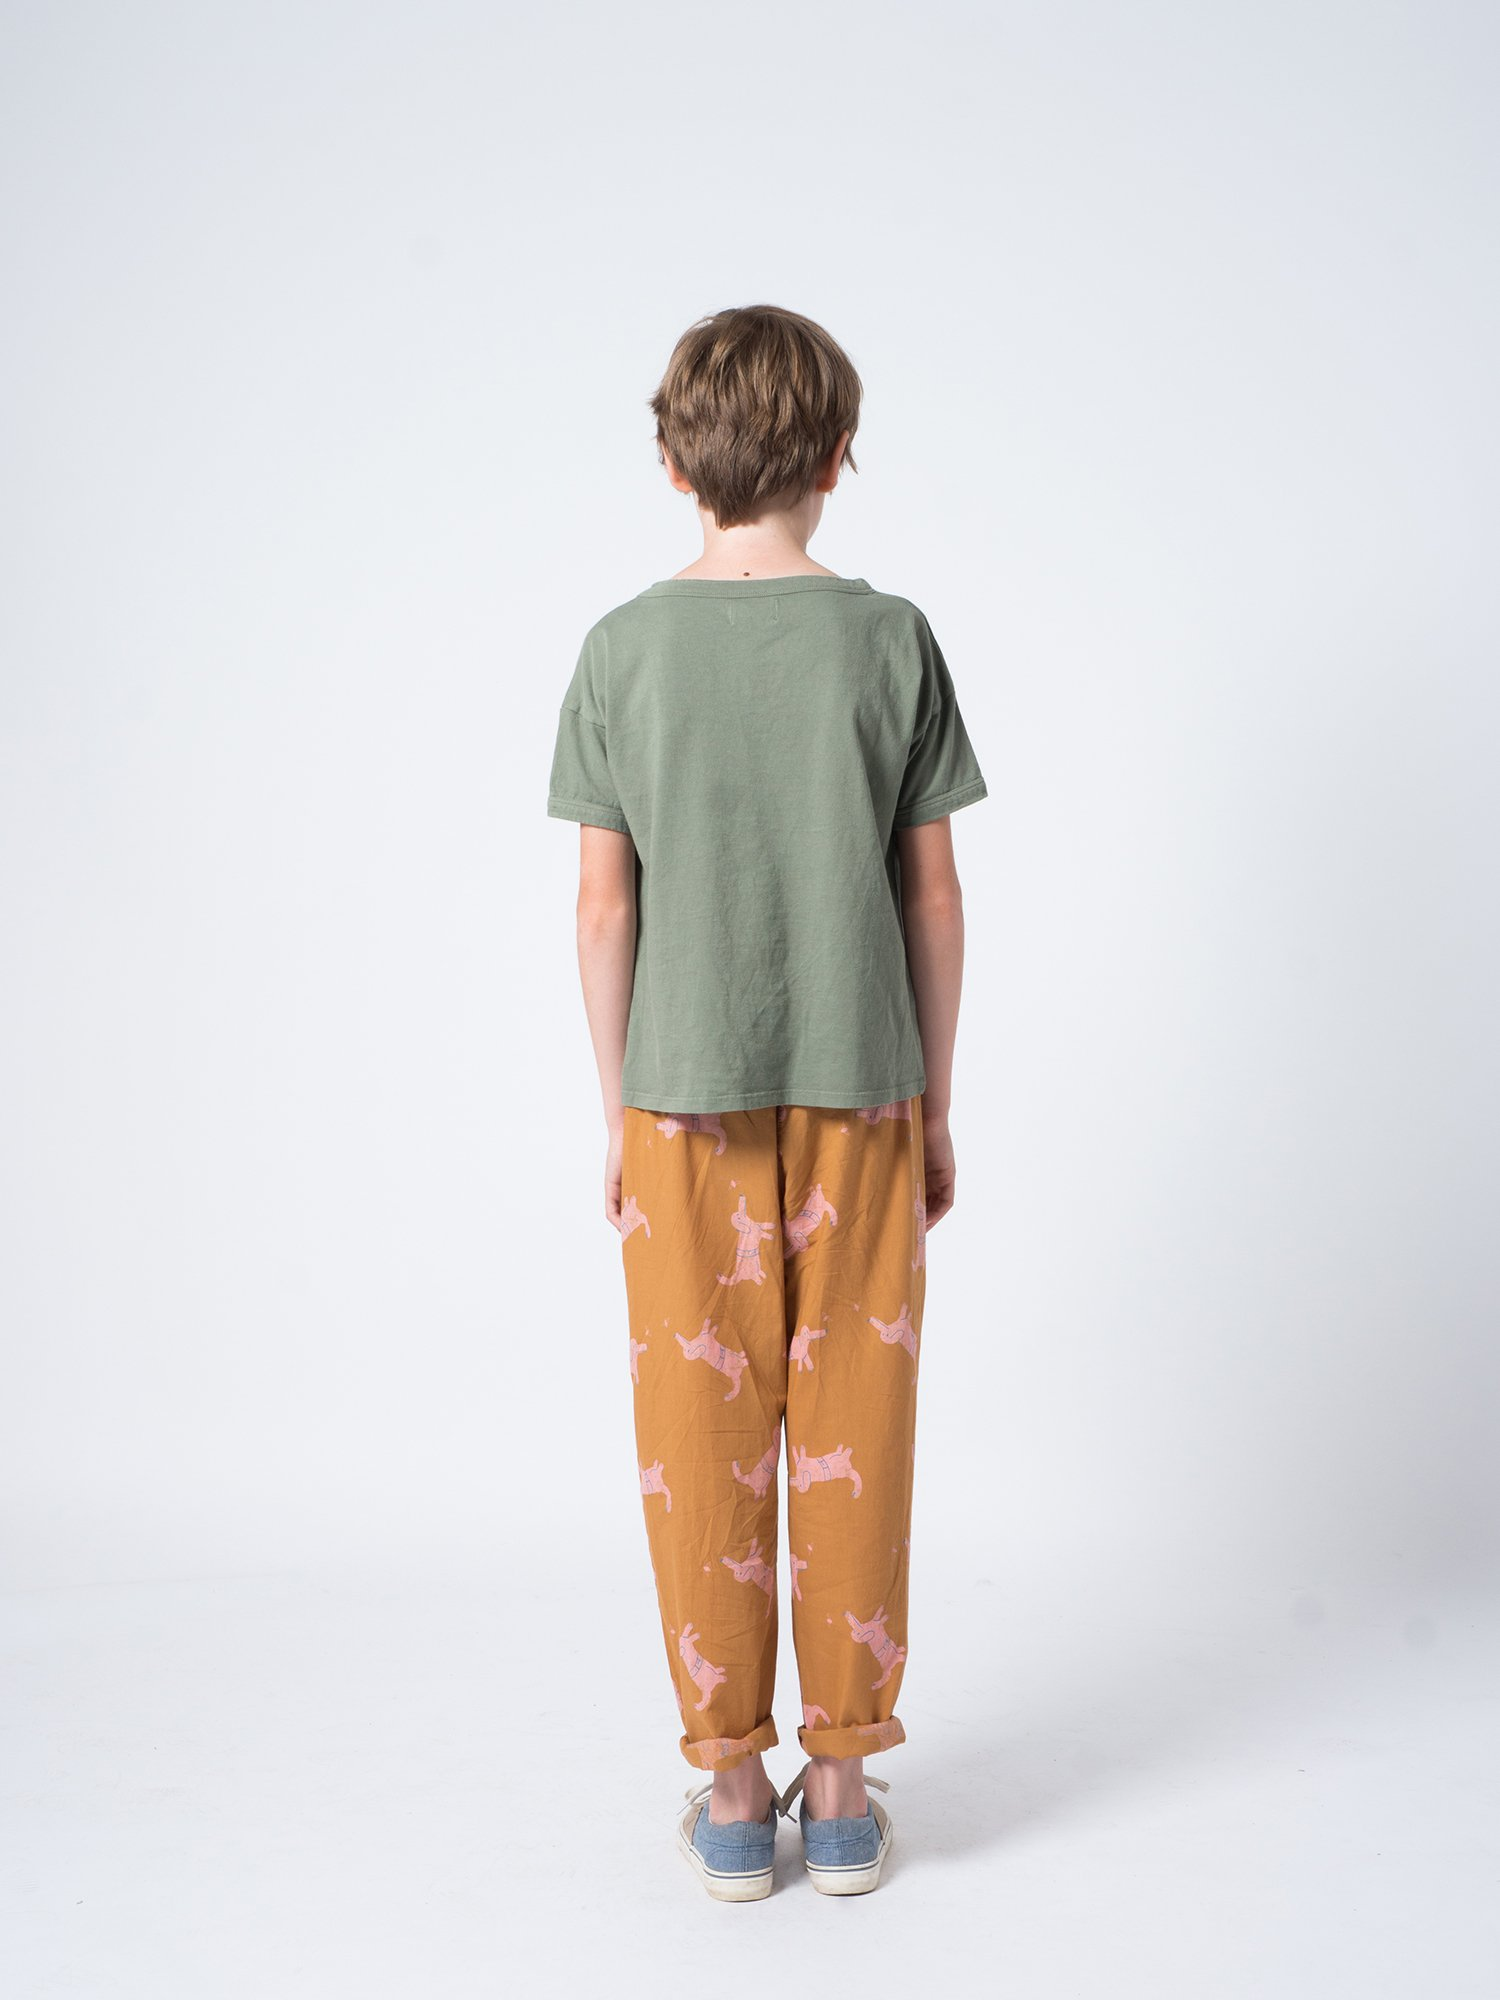 Kid Ant and Apple Short Sleeve T-Shirt Look